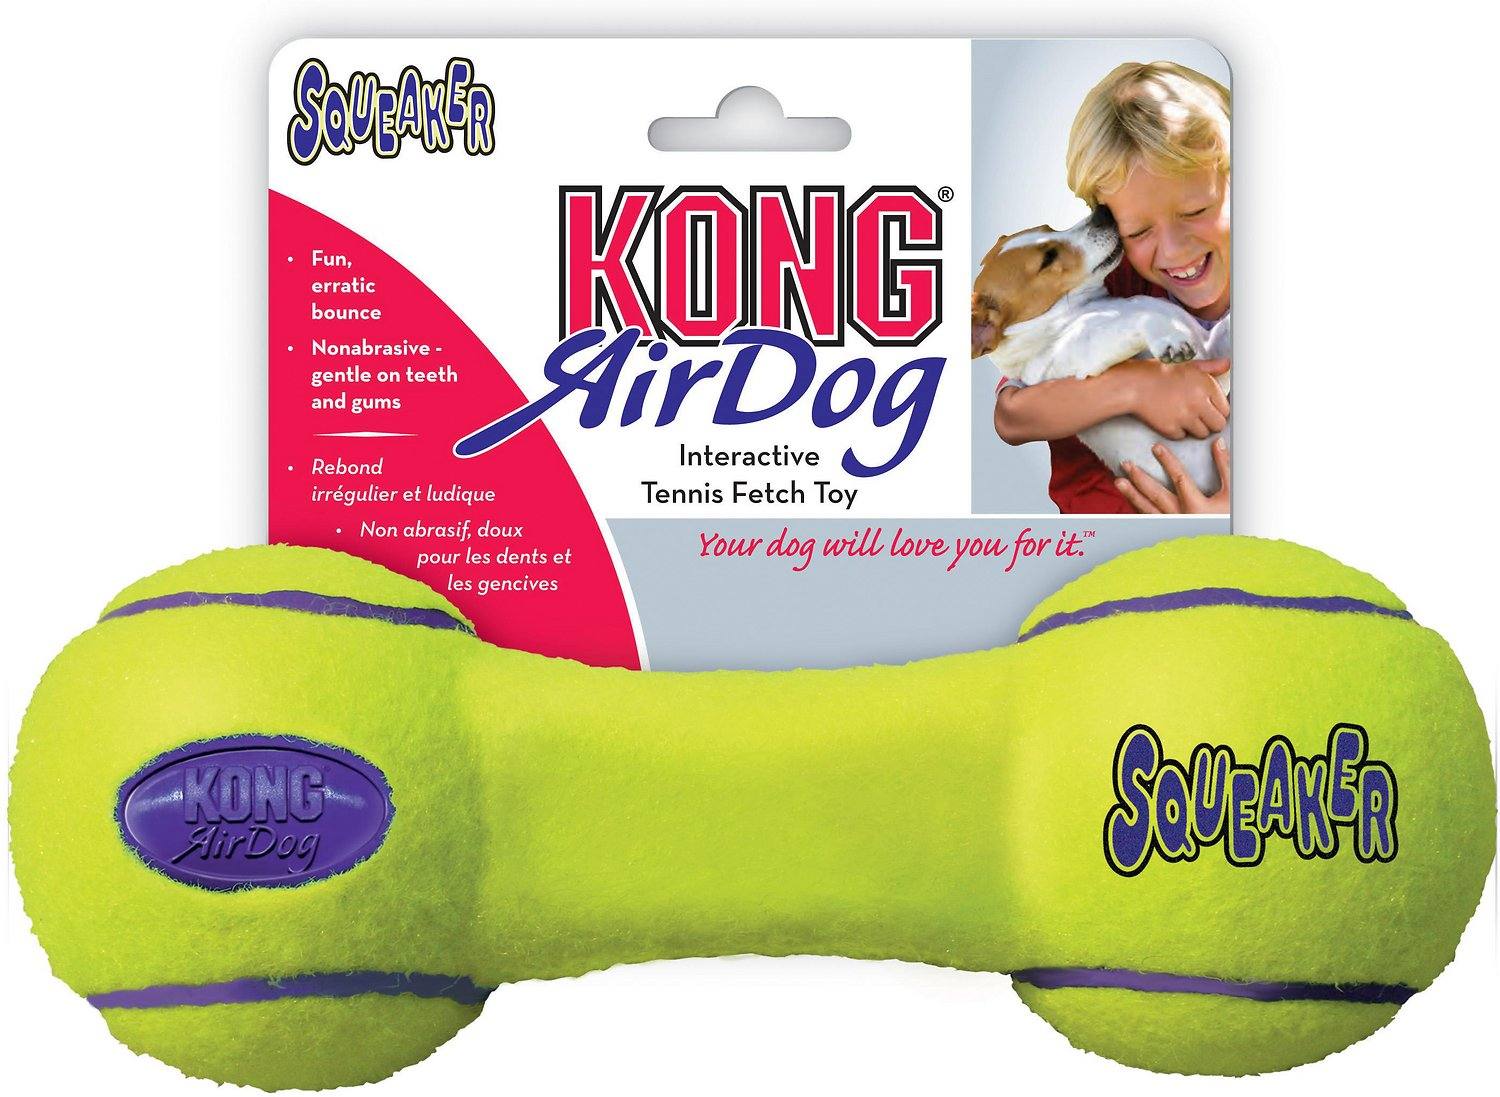 KONG AirDog Dumbbell Dog Toy Image